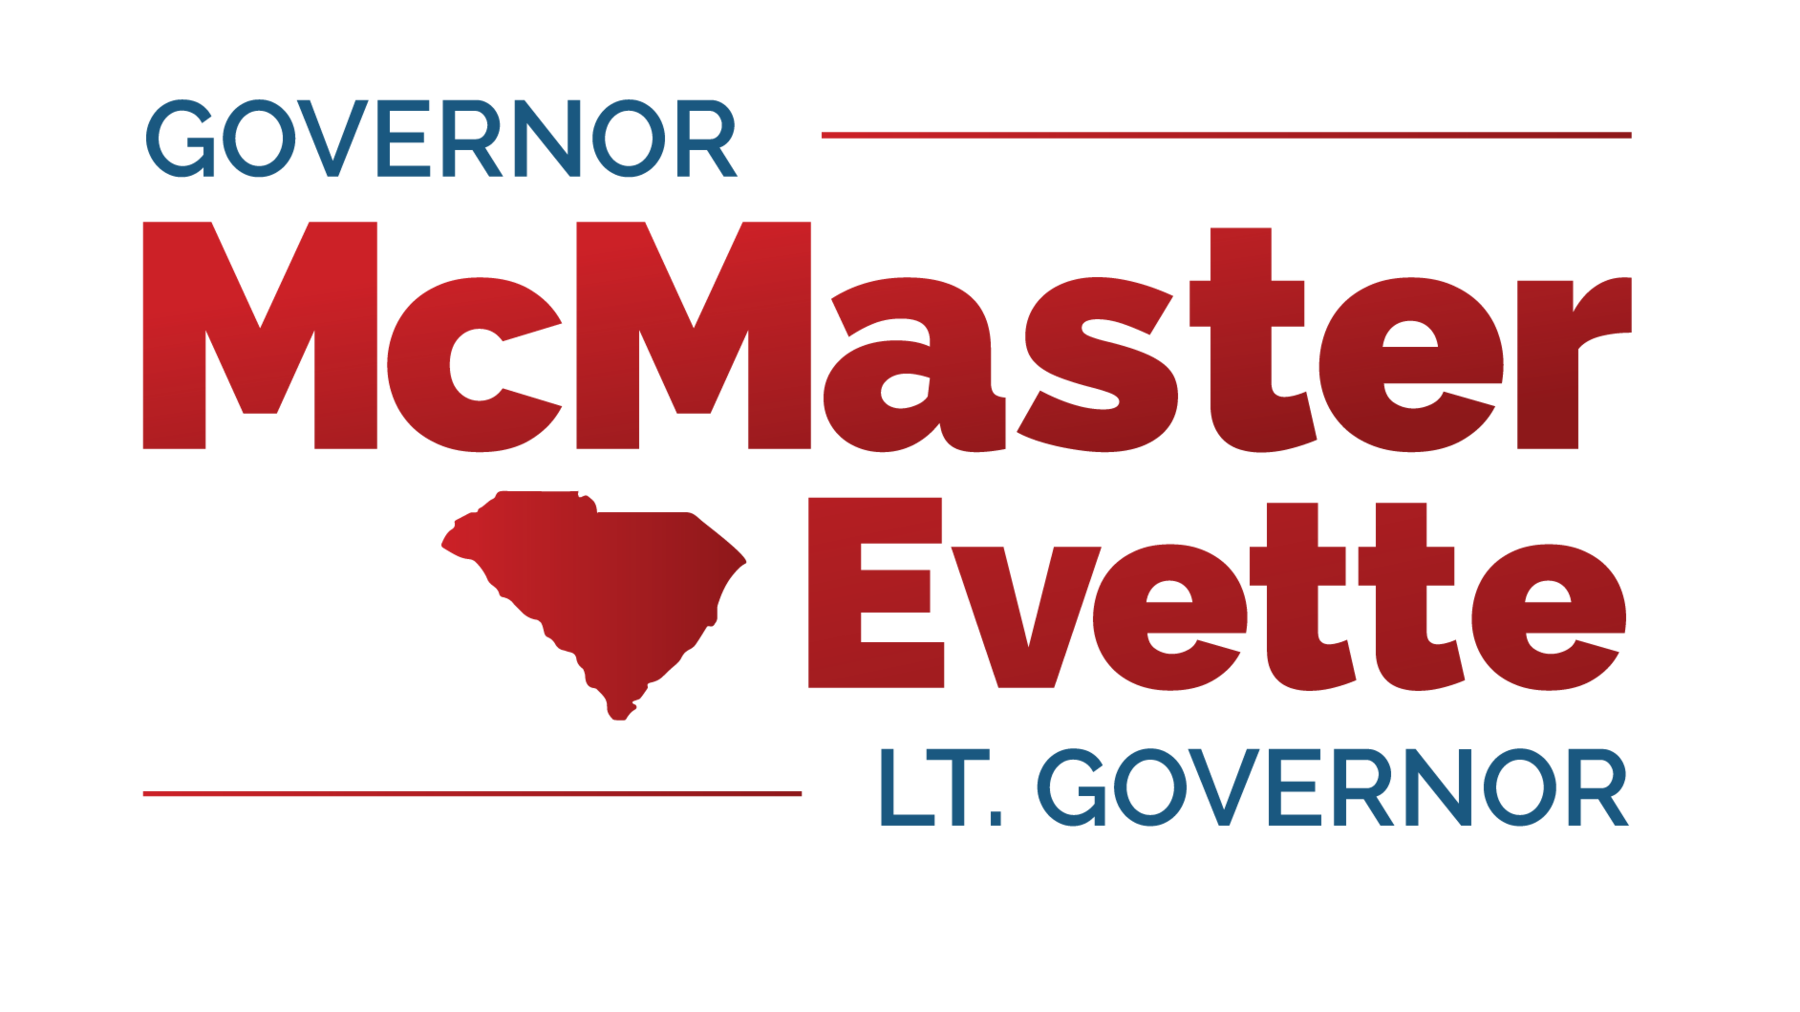 McMaster Evette 2022: Main Website Form